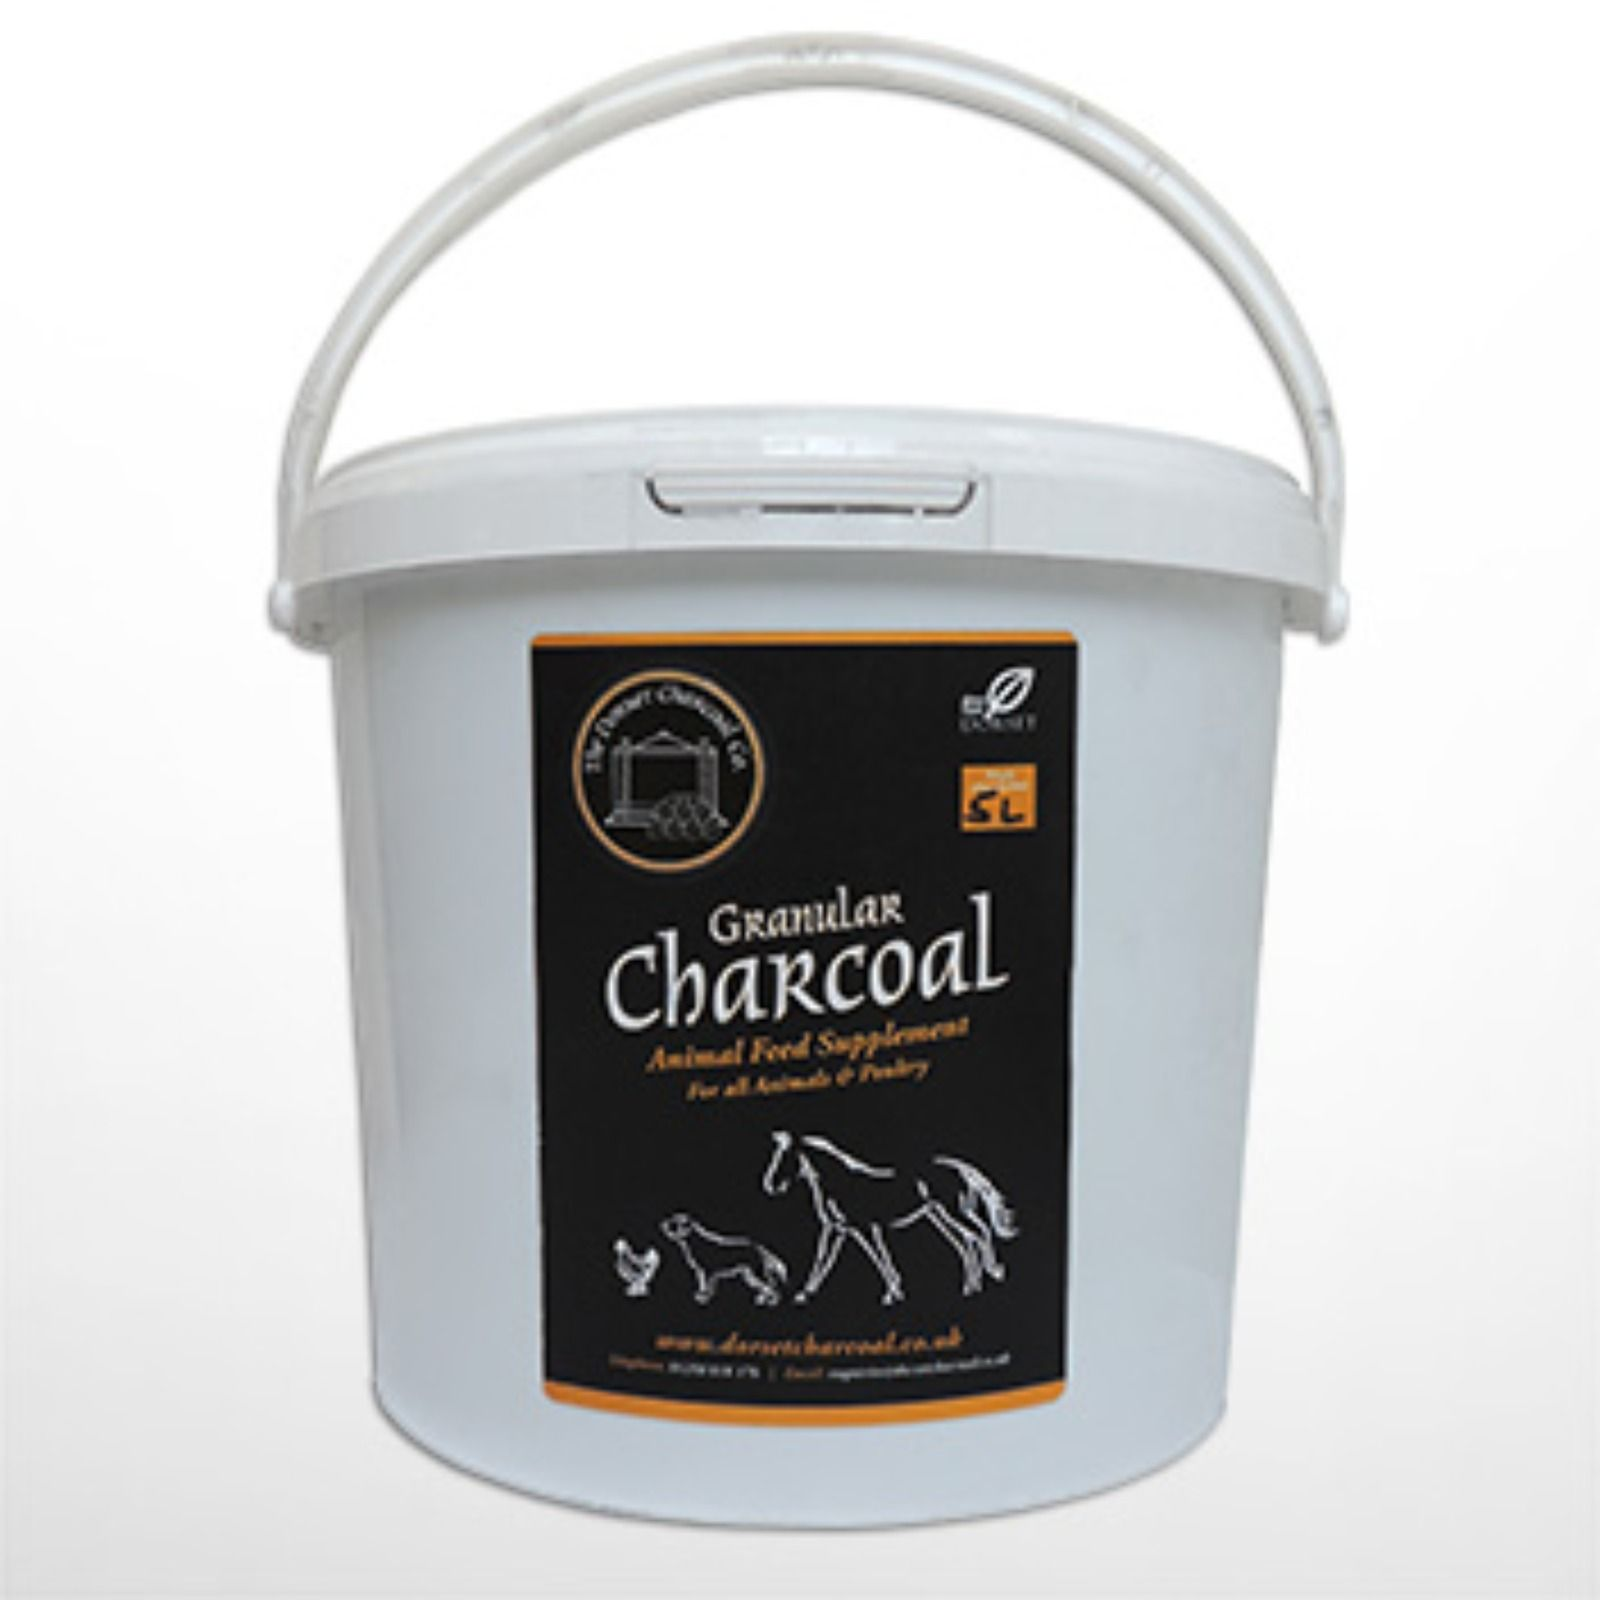 Dorset Charcoal Supplement